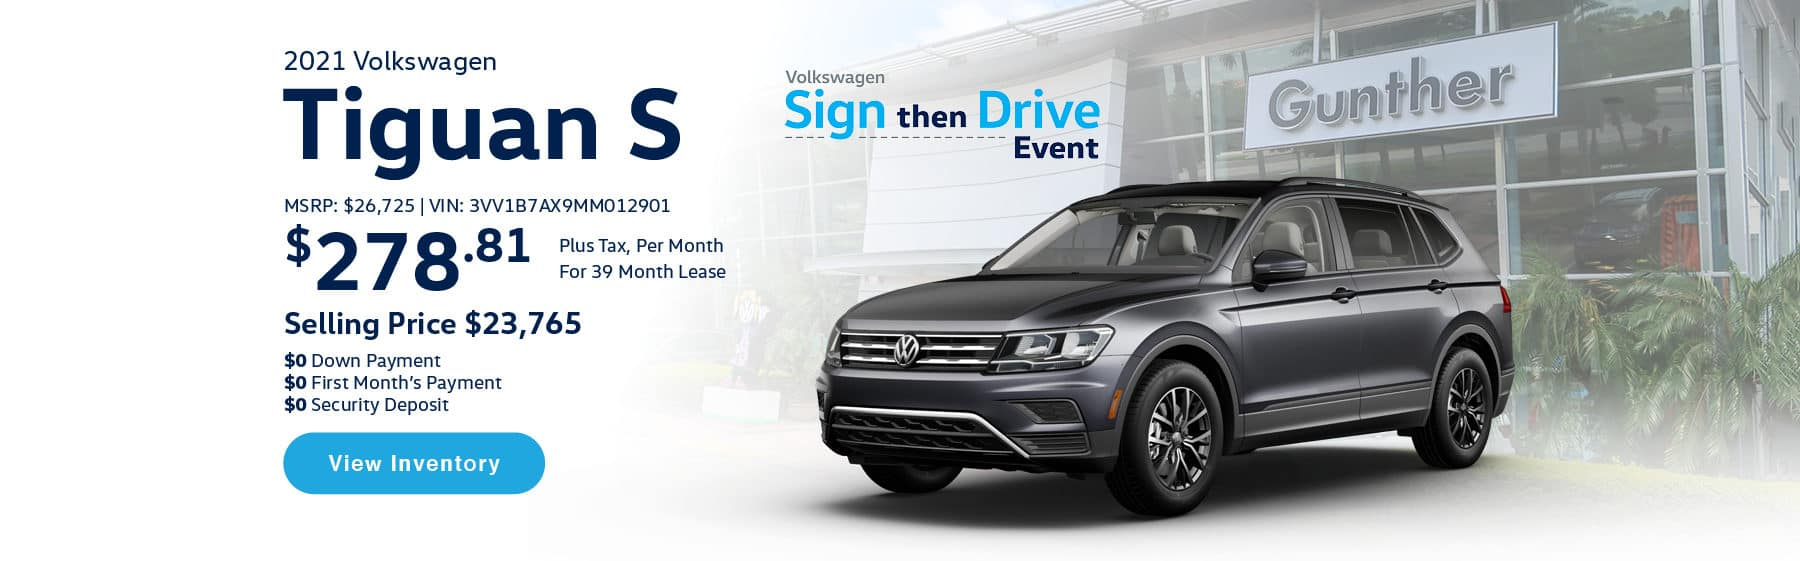 Lease the 2021 Tiguan S for $278.81 per month, plus tax for 39 months. Selling price is $23,765. $0 Down Payment, $0 First Month's Payment, $0 Security Deposit. $26,725 MSRP. Vin #: 3VV1B7AX9MM012901. Click or tap here to visit our inventory.